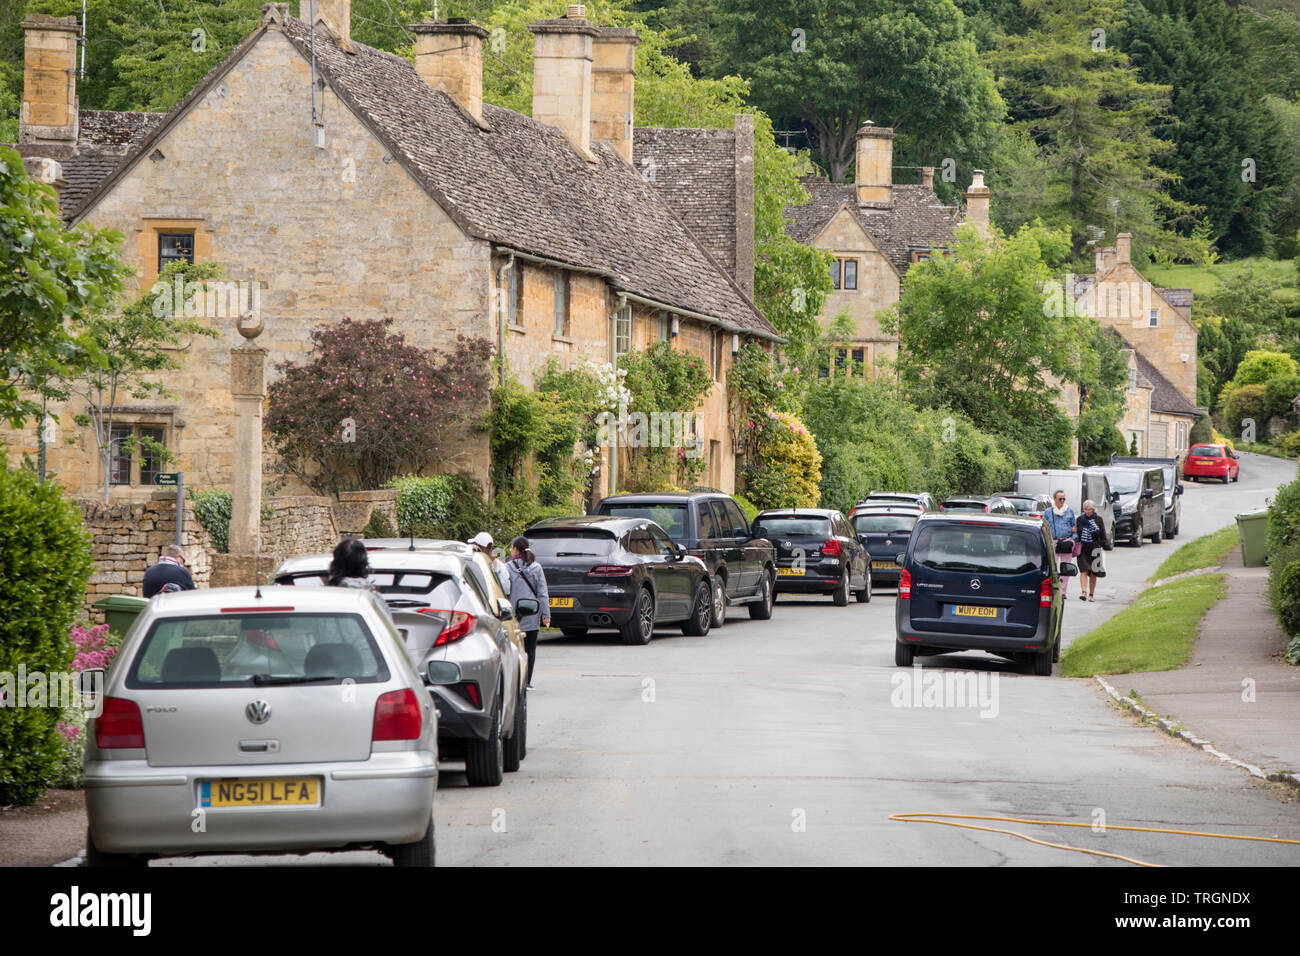 The Cotswold village of Stanway congested with parked cars, Worcestershire, England, UK Stock Photo